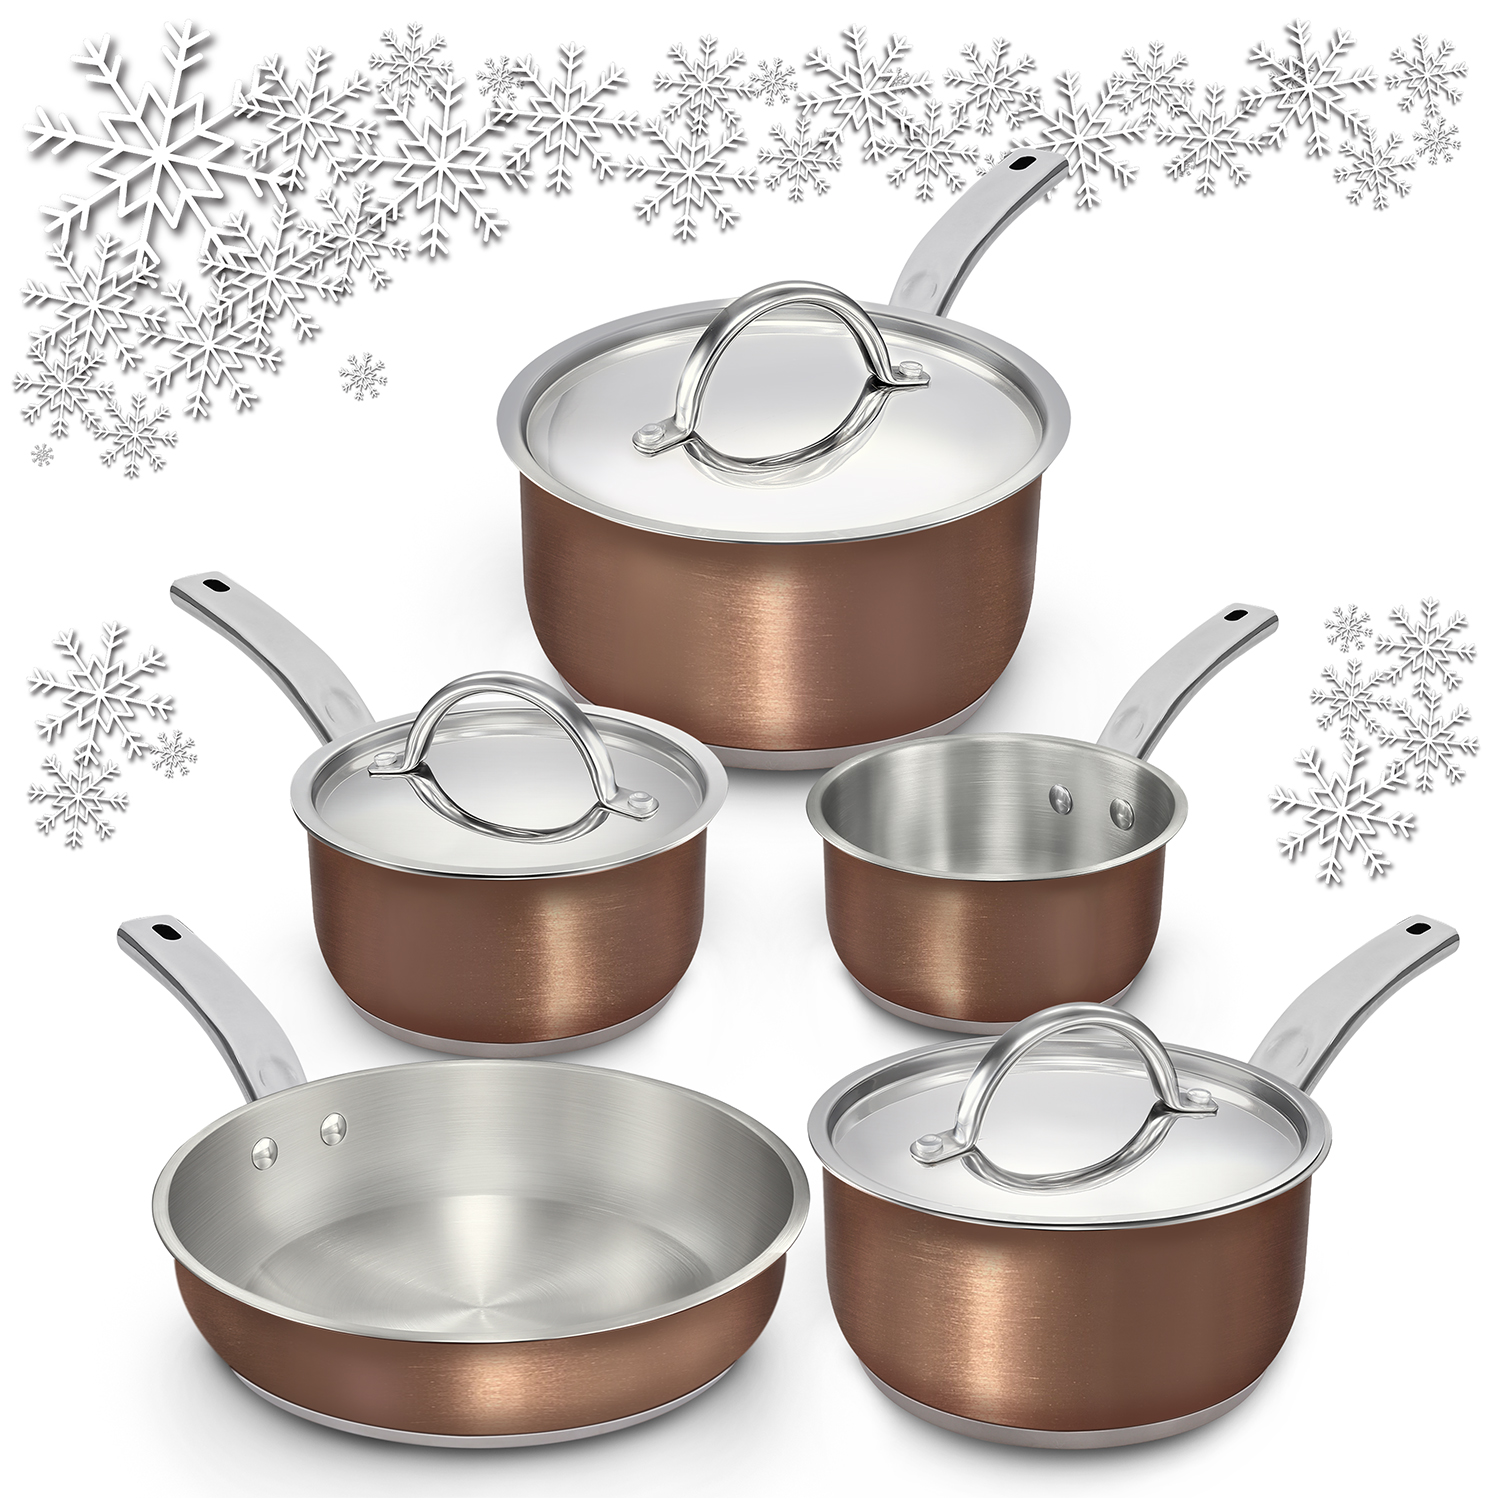 Year-End Deals, Tri-Ply Copper Non-Stick Cookware Set, Just $89.99